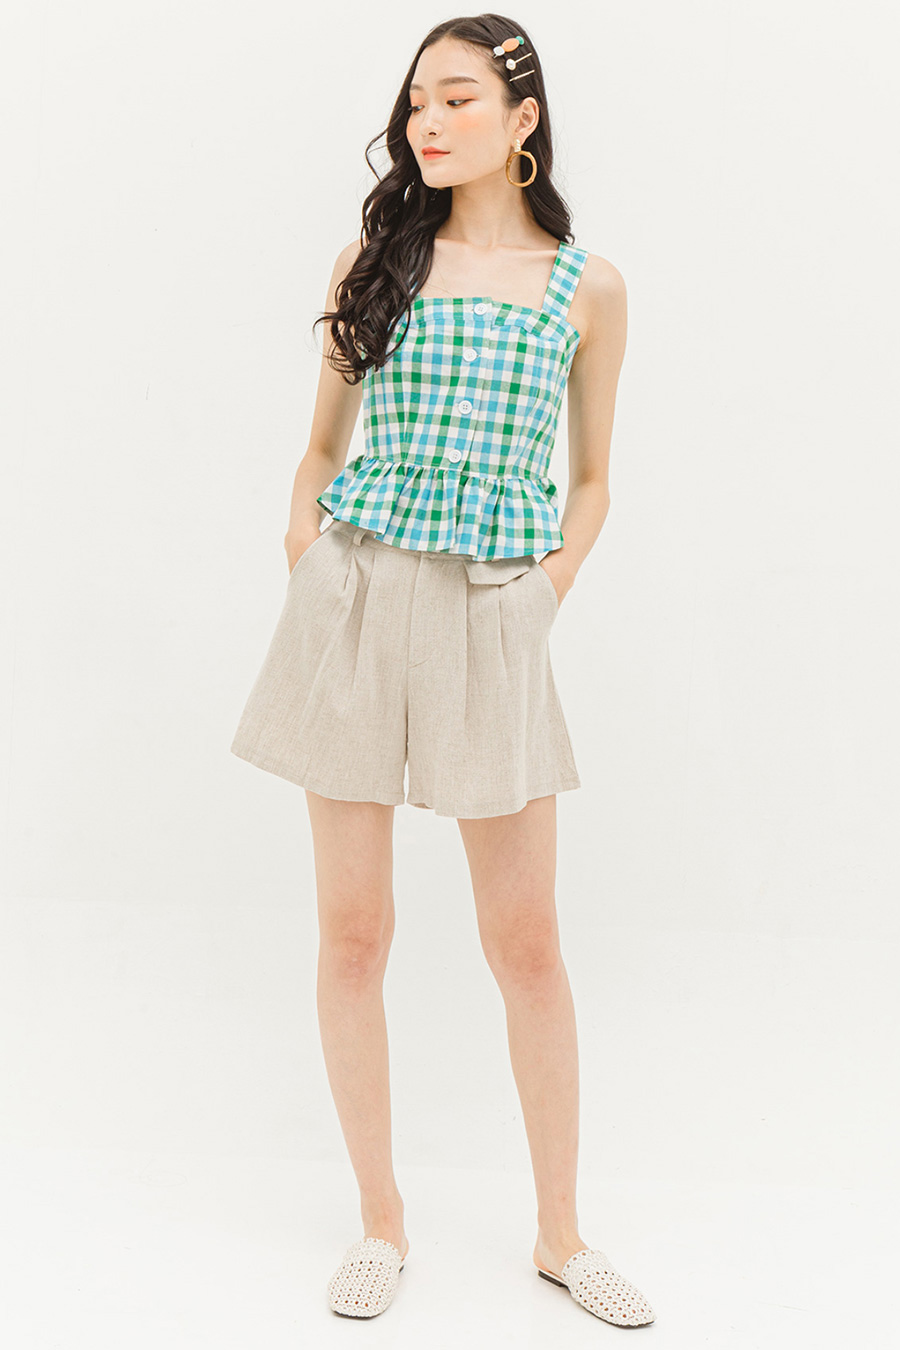 ALVA TOP - GINGHAM